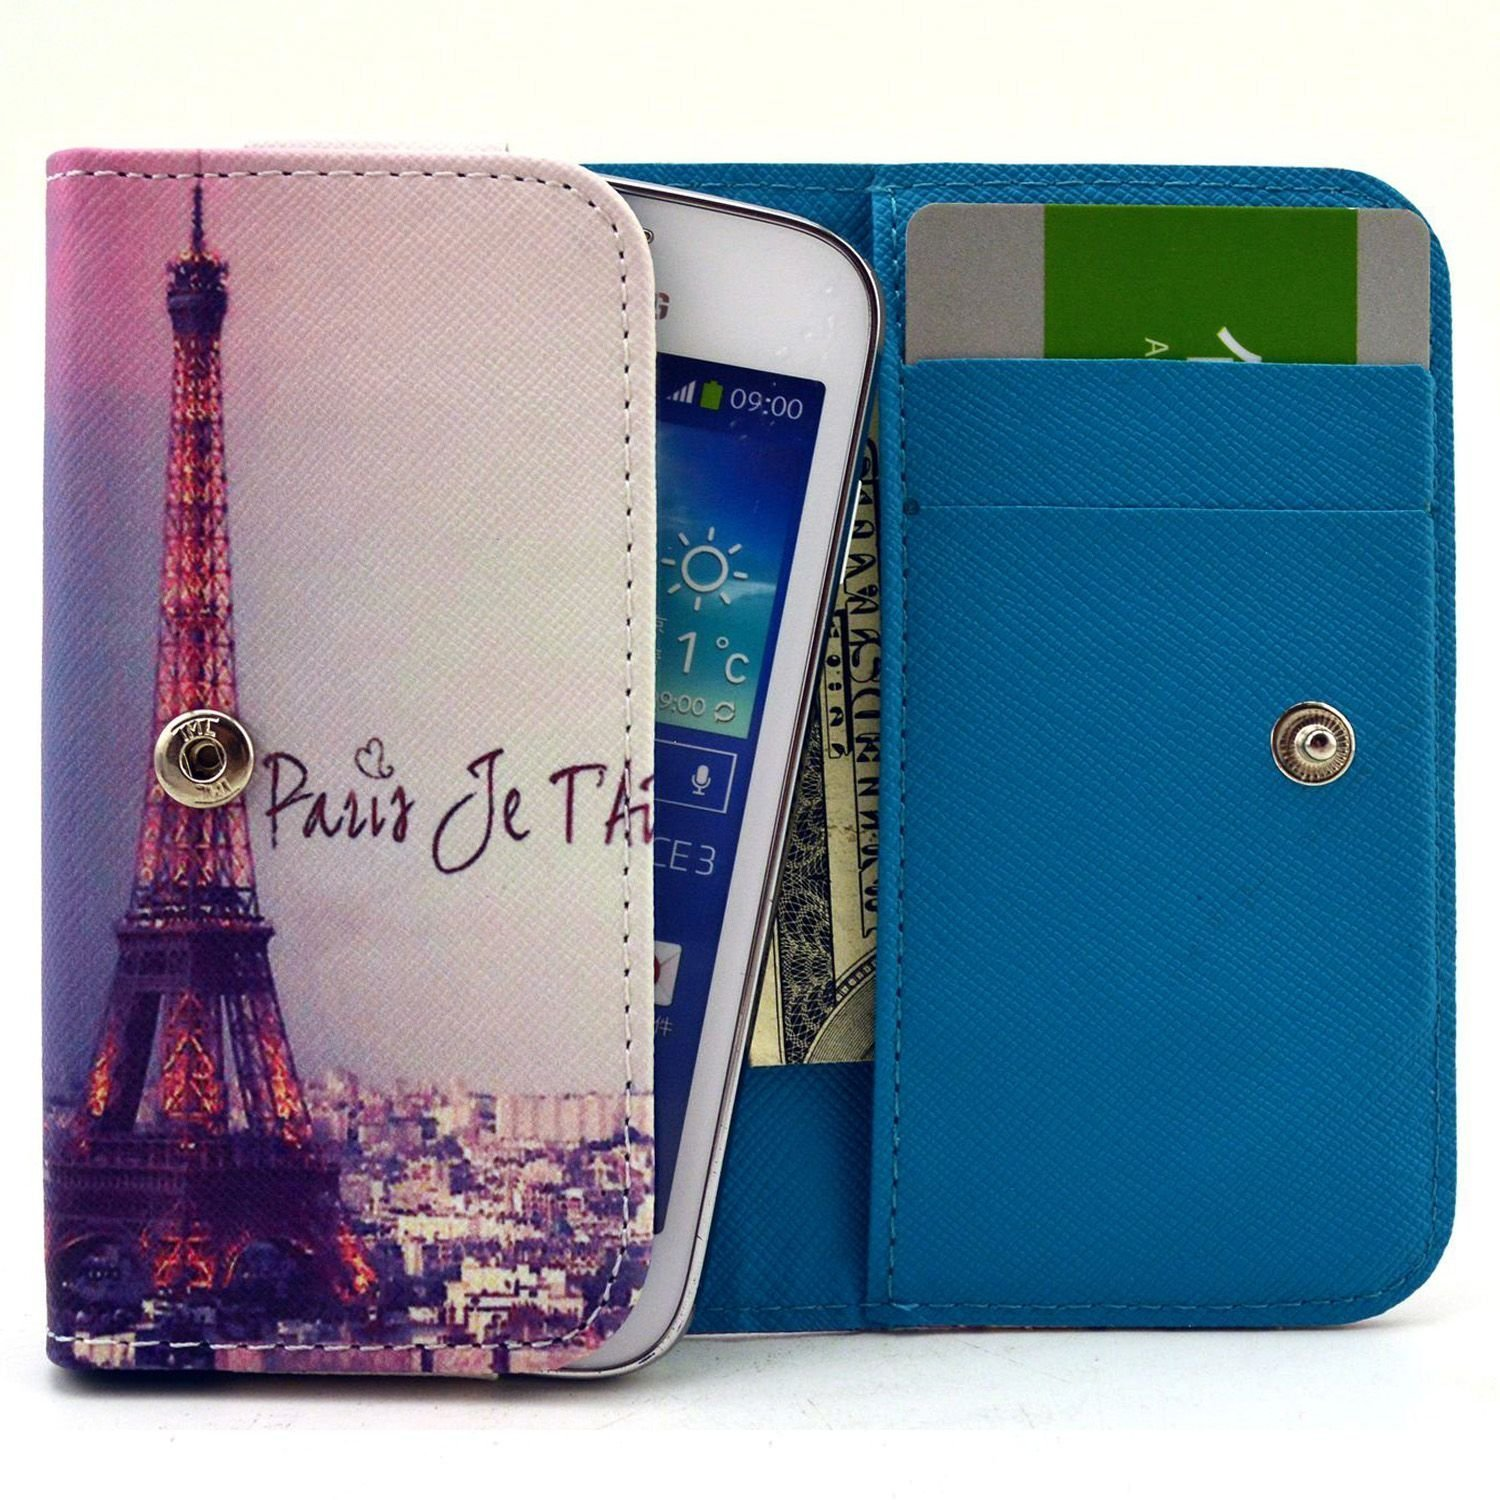 FIGO Atrium 5.5 Case,Universal Wallet Clutch Bag Carrying Flip Leather Smartphone Case with Card Slots for FIGO Atrium 5.5 Inch-Paris Eiffel Tower Style